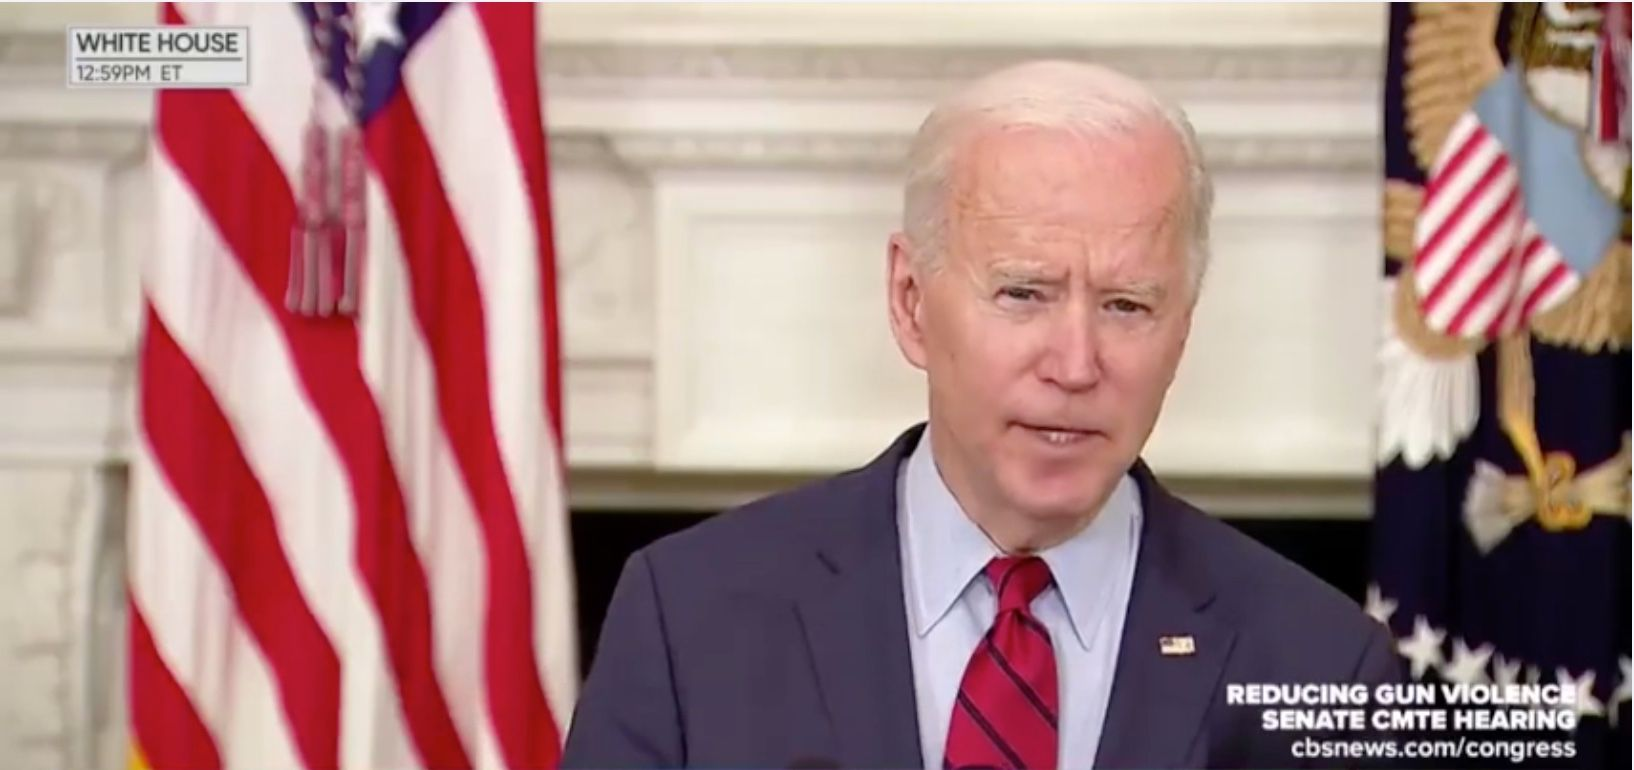 WATCH: Biden to use Boulder mass shooting to tighten gun control laws